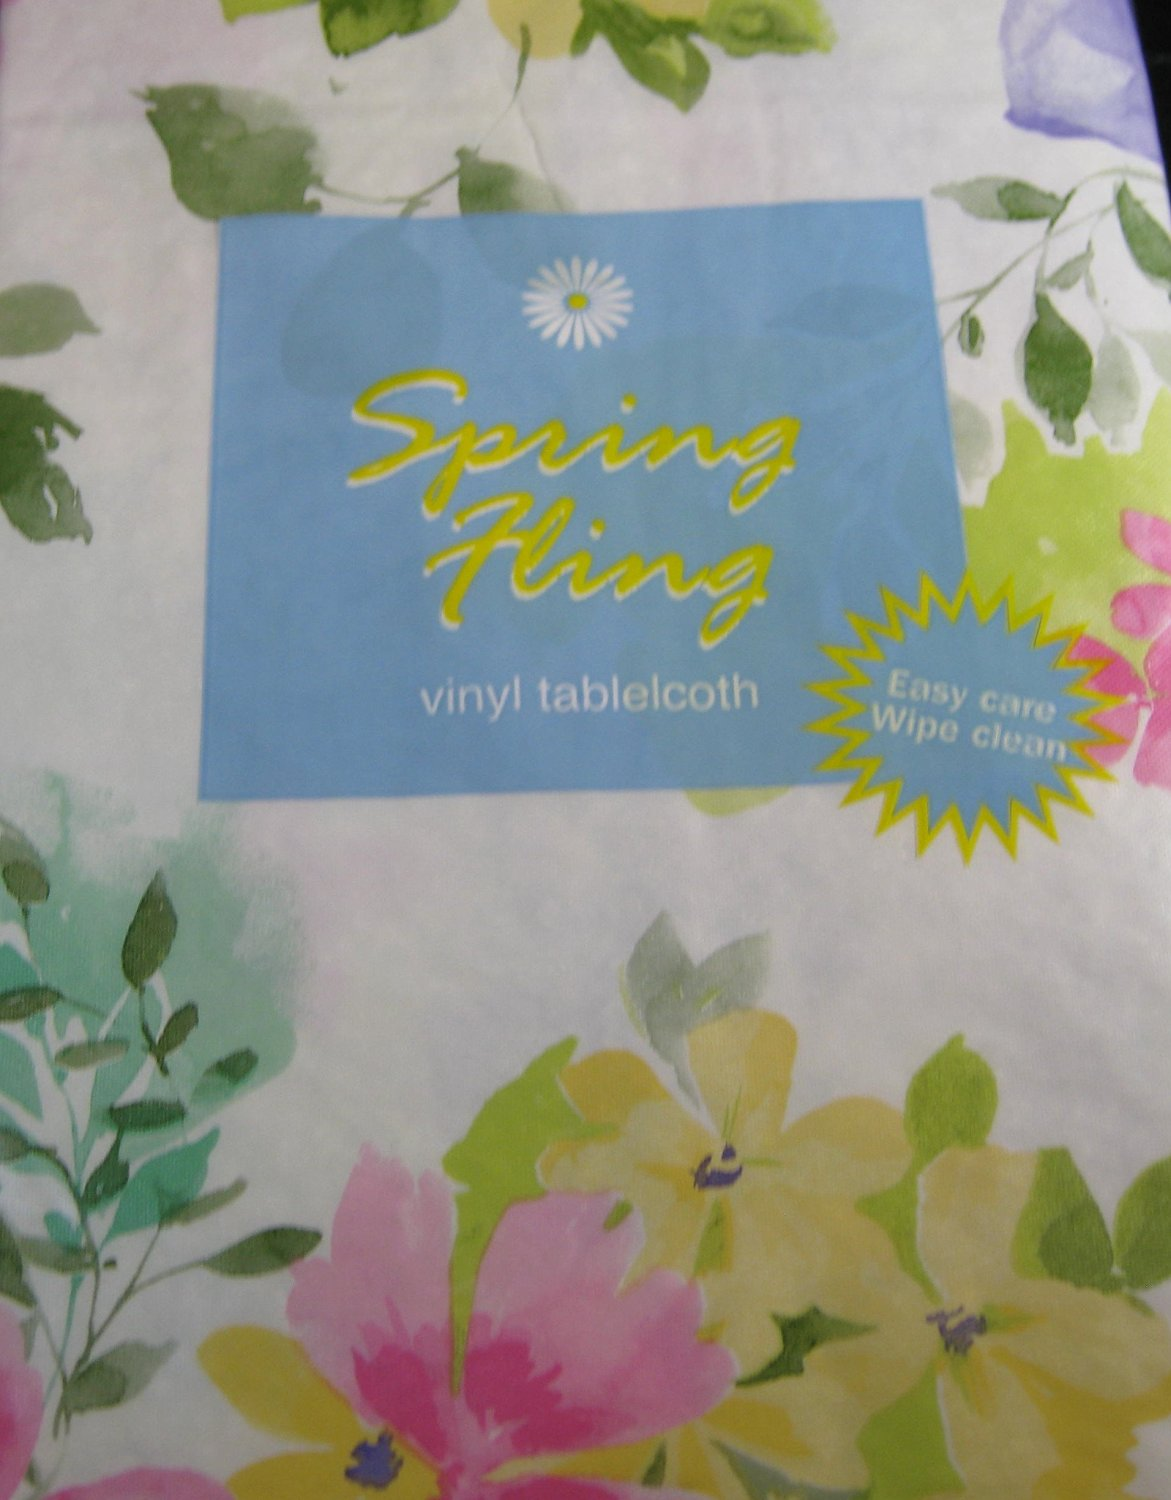 Flannel Backed Vinyl Spring Fling Tablecloths By Elrene -Floral- Assorted Sizes - Square,Oblong & Round (60 Round)